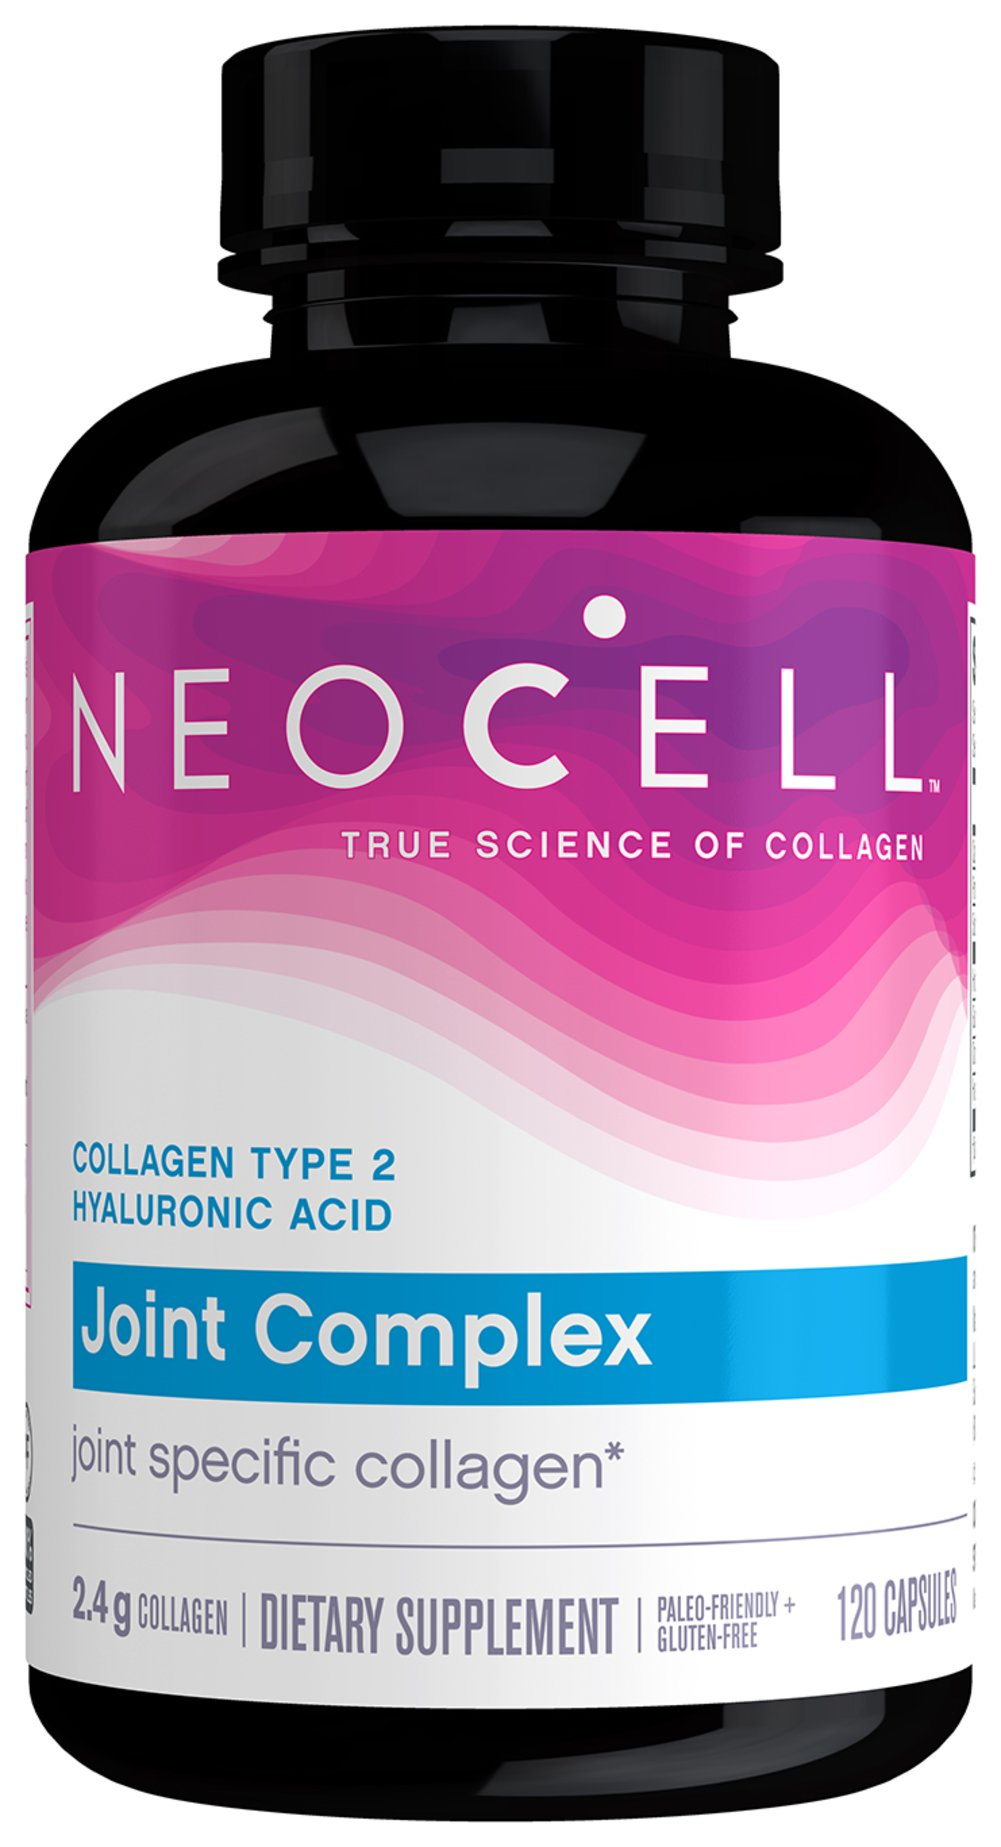 Collagen Type II Joint Complex with Hyaluronic Acid <p><strong>From the Manufacturer's Label:</strong></p><p>Collage Type 2 provides essential nutrients for complete joint support and youthful skin.  As we age, the body's ability to make the protein Collagen Type 2 slows down.  Collagen 2 is the key structural protein in cartilage tissue.  NeoCell Collagen 2 contains glucosamine, chondroitin and hyaluronic acid.  Hyaluronic acid is an important factor for sk